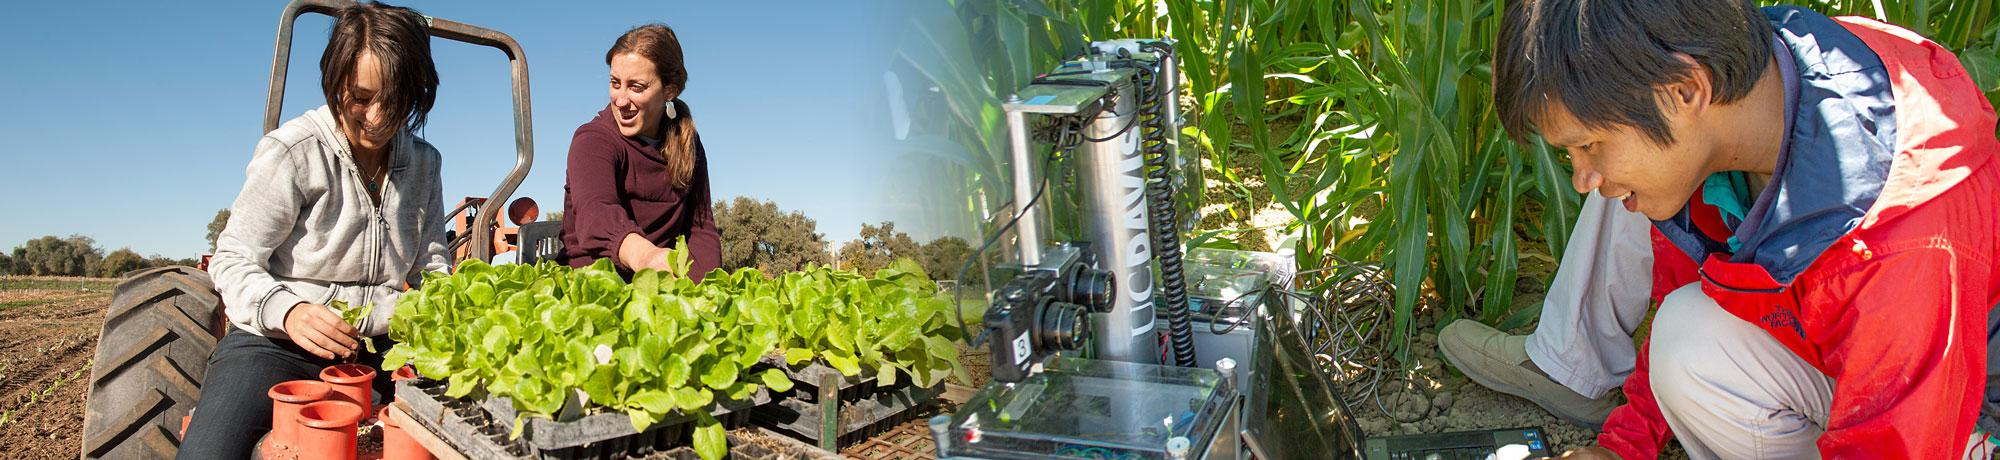 The new Agricultural Technology program of UC Davis Smart Farm will prepare students for the new farming technology and smart farming practices for the future of food and teach sustainable agriculture methods.